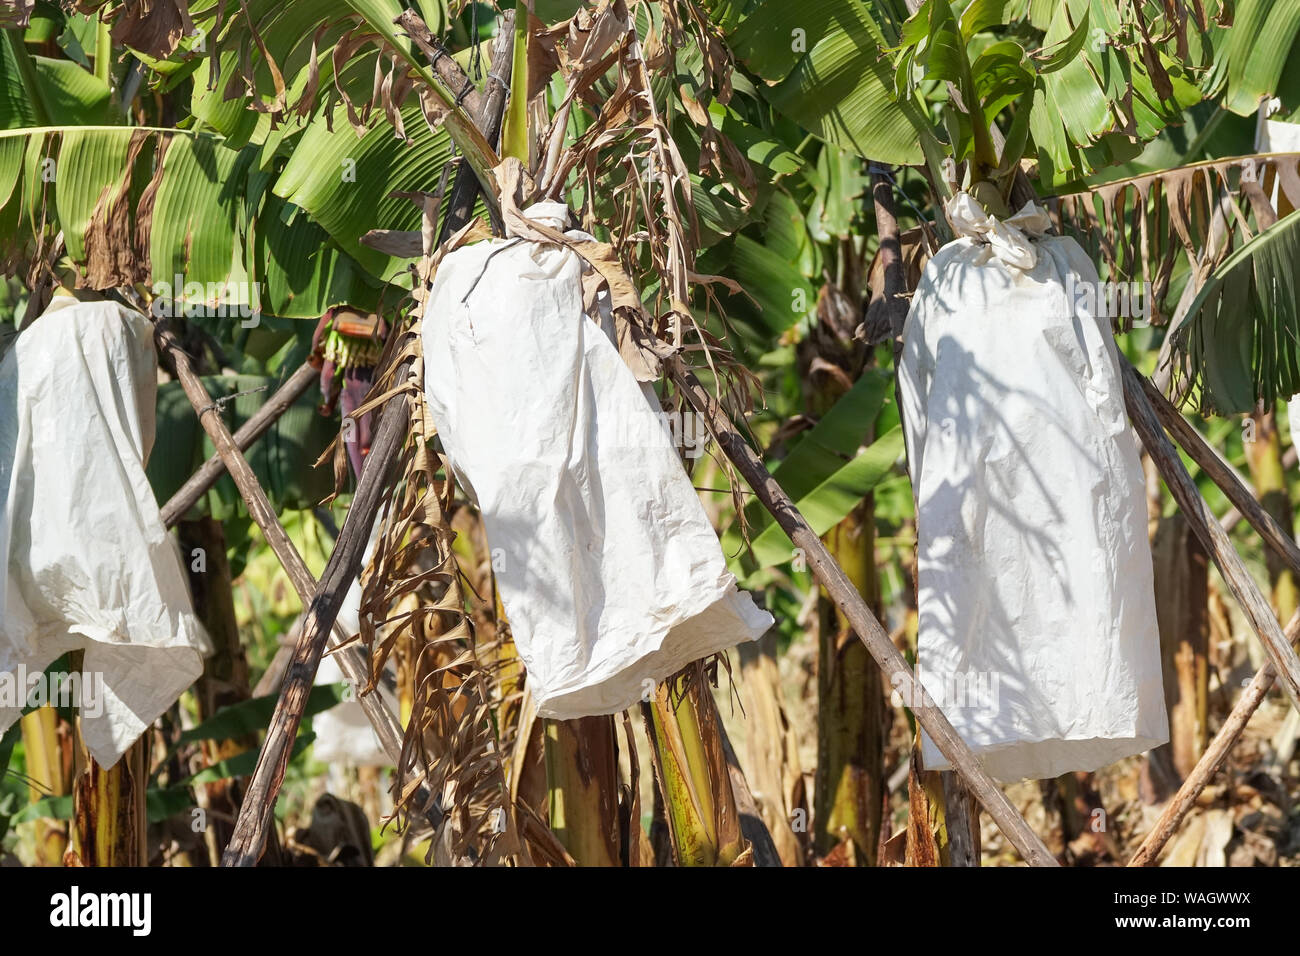 close up of white plastic bags covering large banana bunches on a banana plant or tree on a plantation or farm in Hazyview, Mpumalanga, South Africa Stock Photo